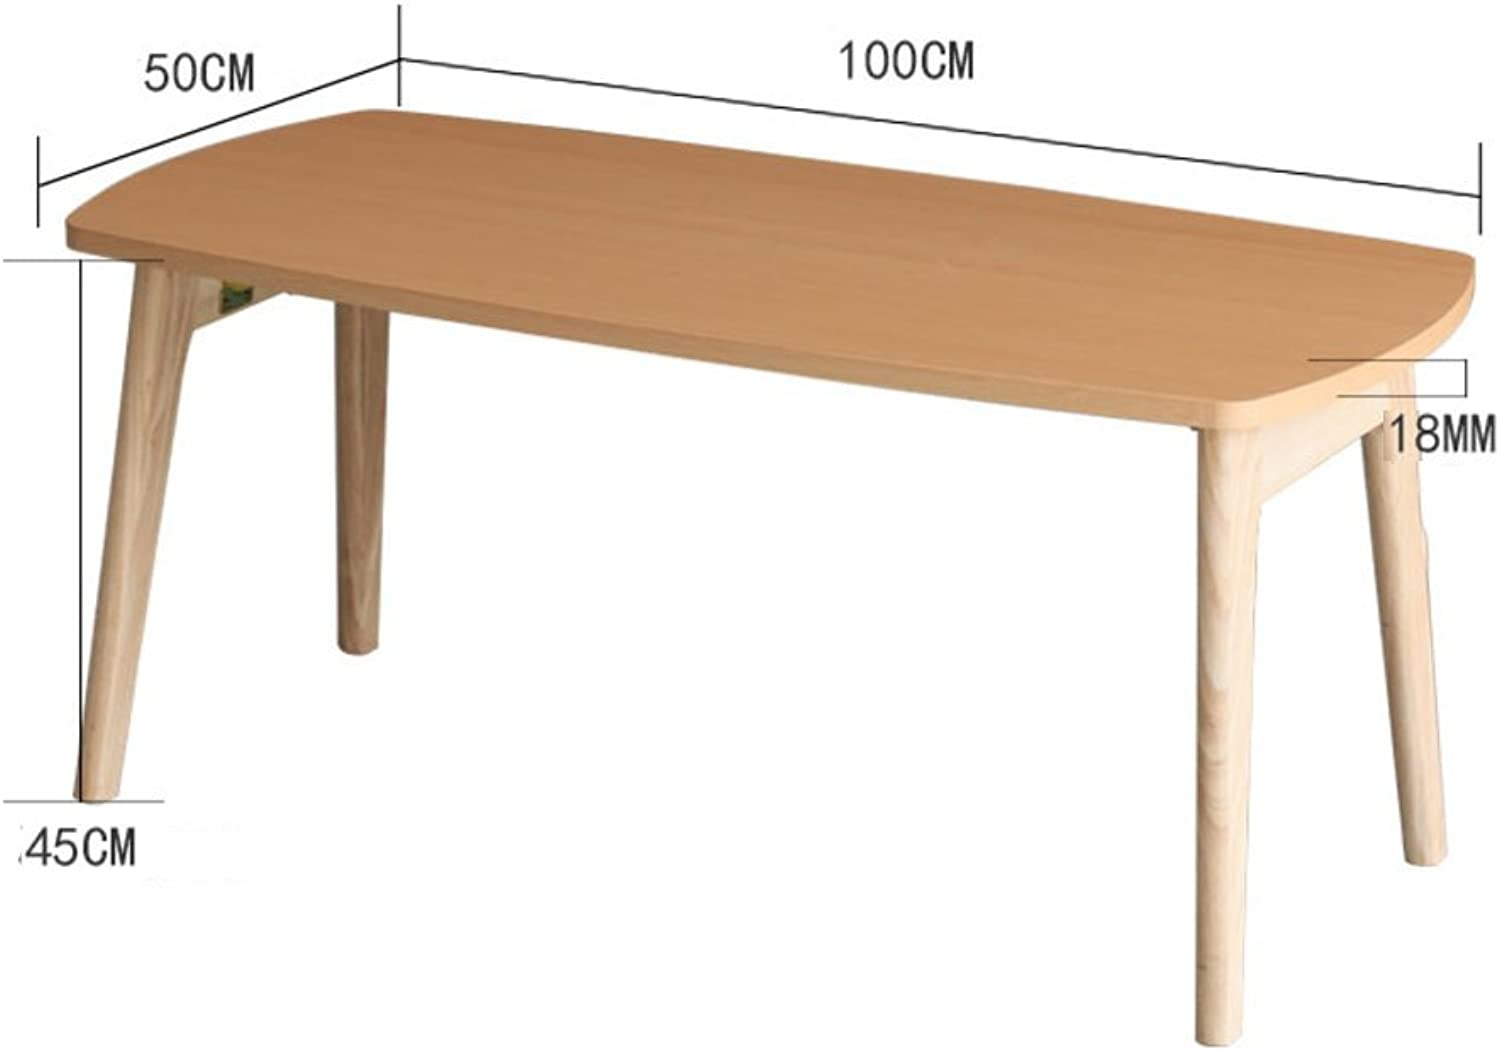 Solid Wood Foldable Rectangle Sofa Table, Living Room Side Table Coffee Table Bedroom Night Table Telephone Table-Log L100xW50xH45cm